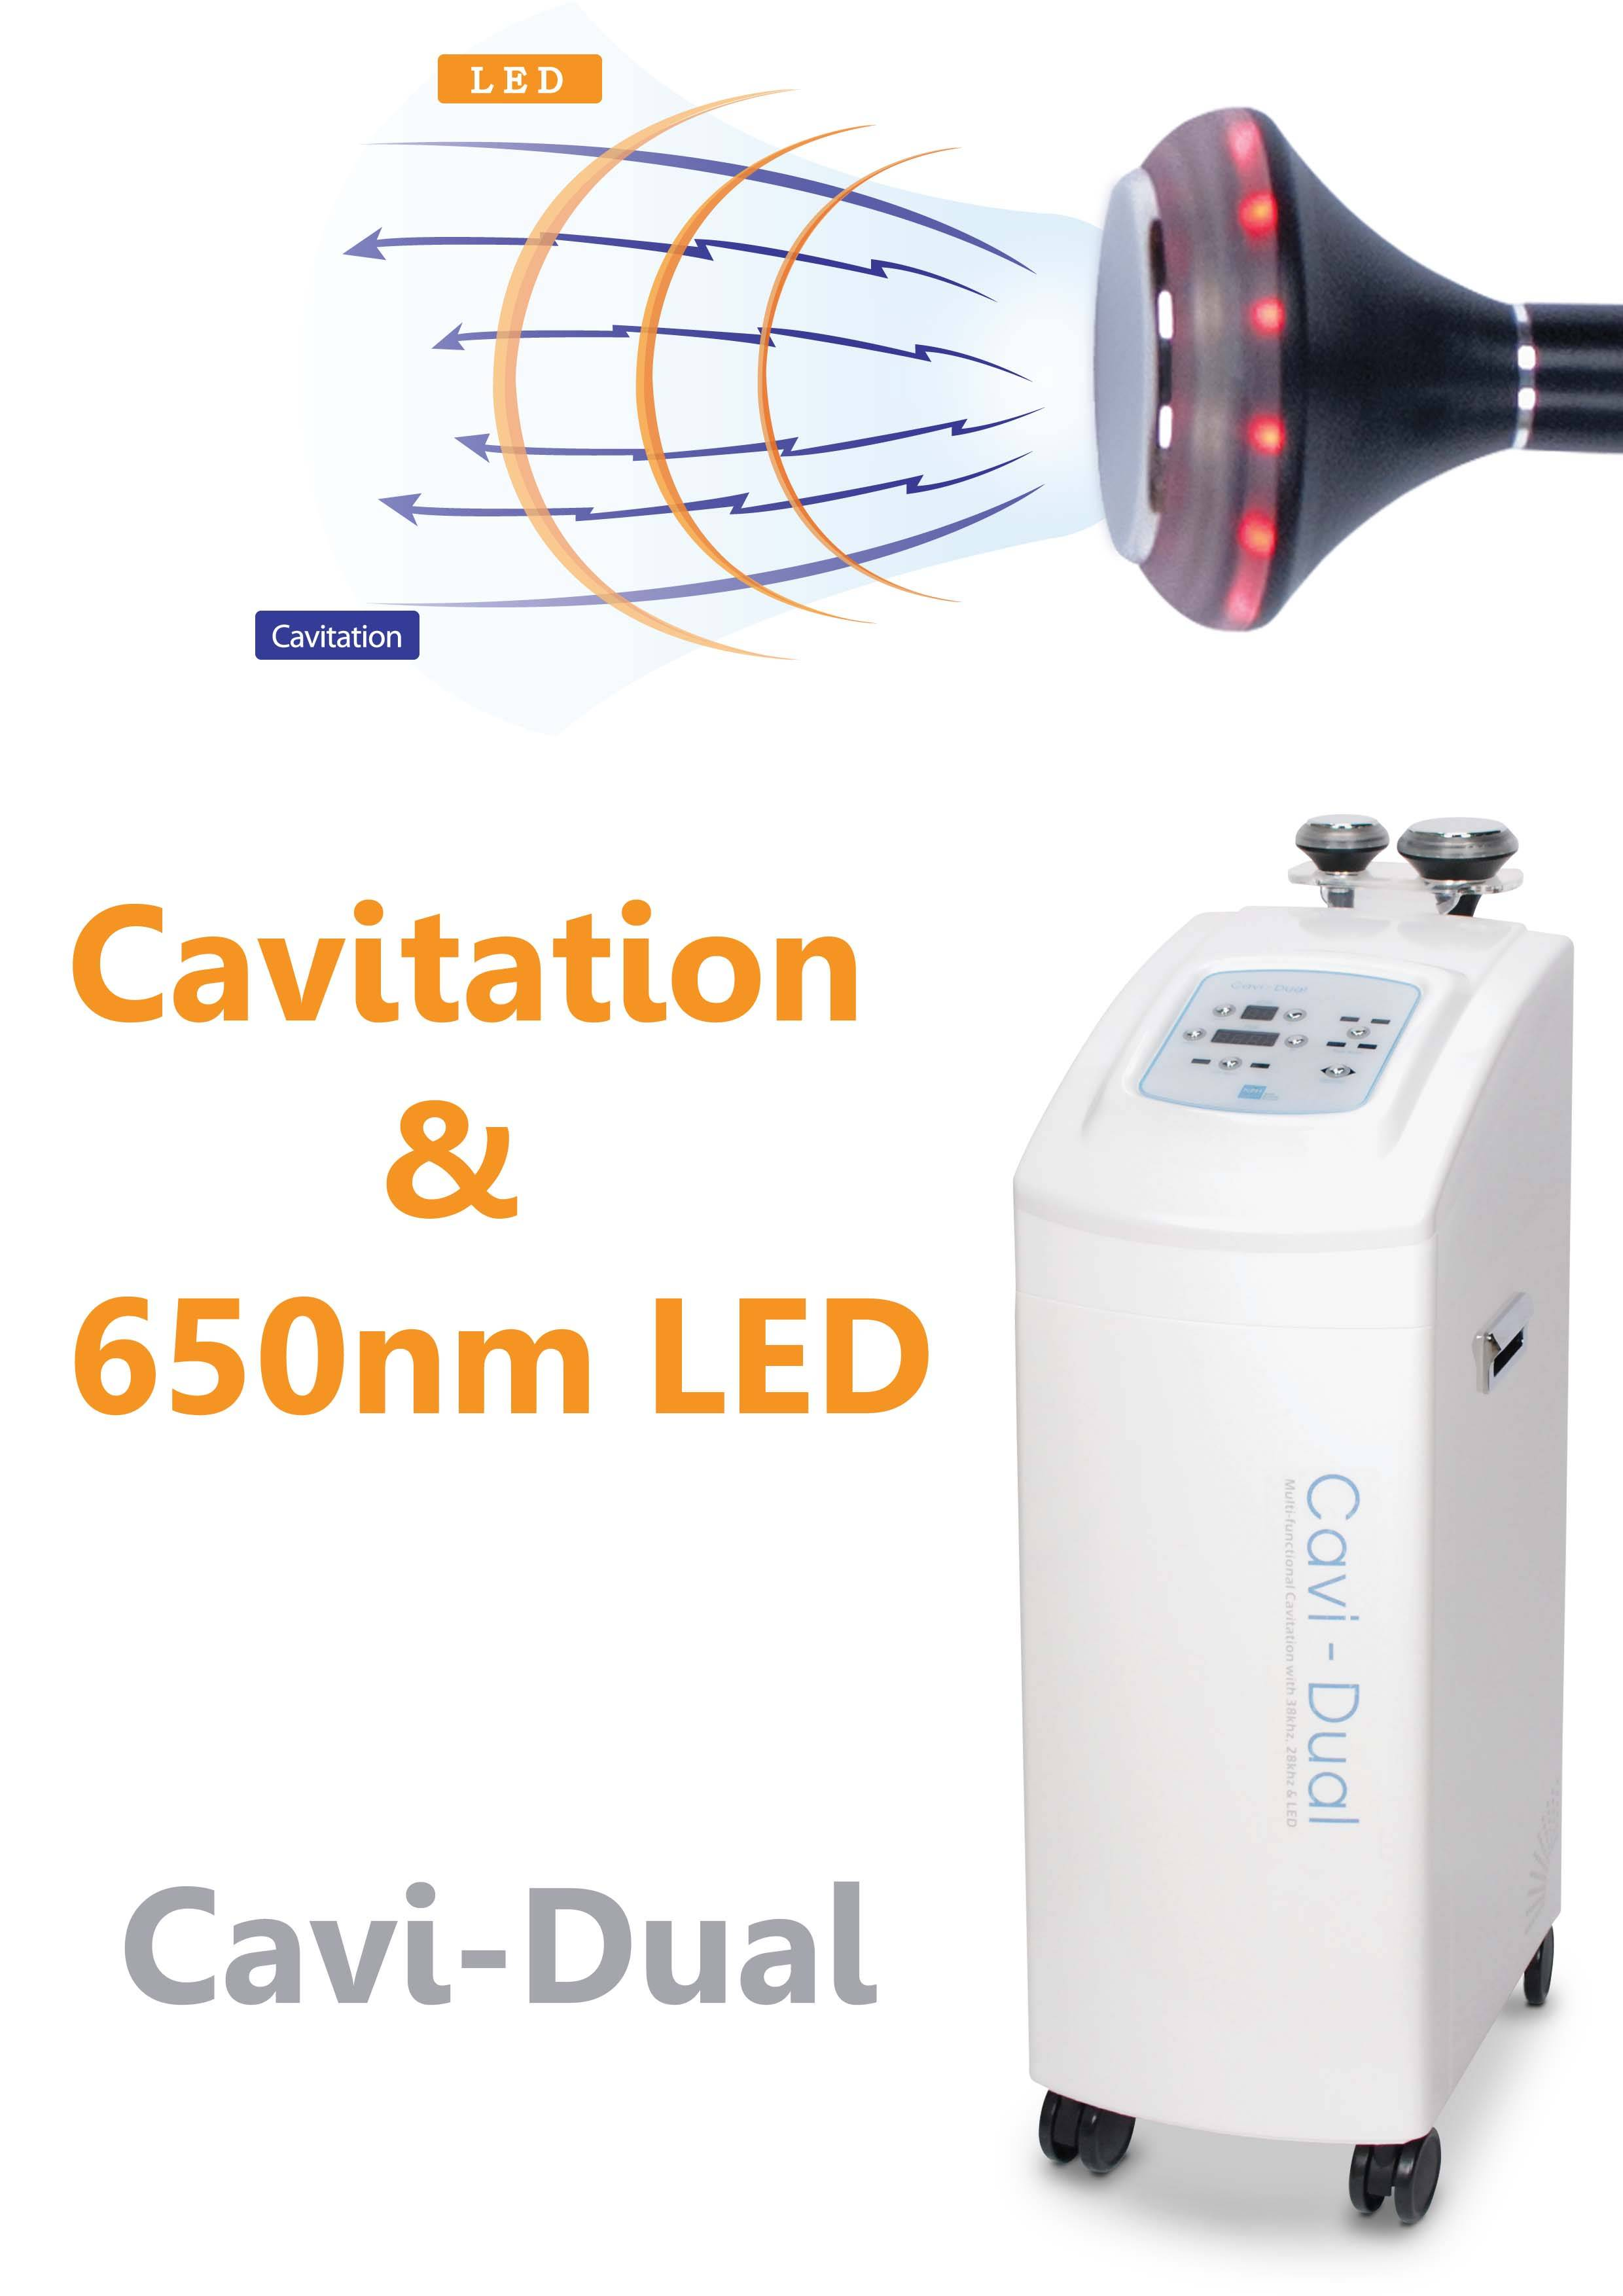 NEW 2016 Cavitation Body Slimming Cavi-Dual